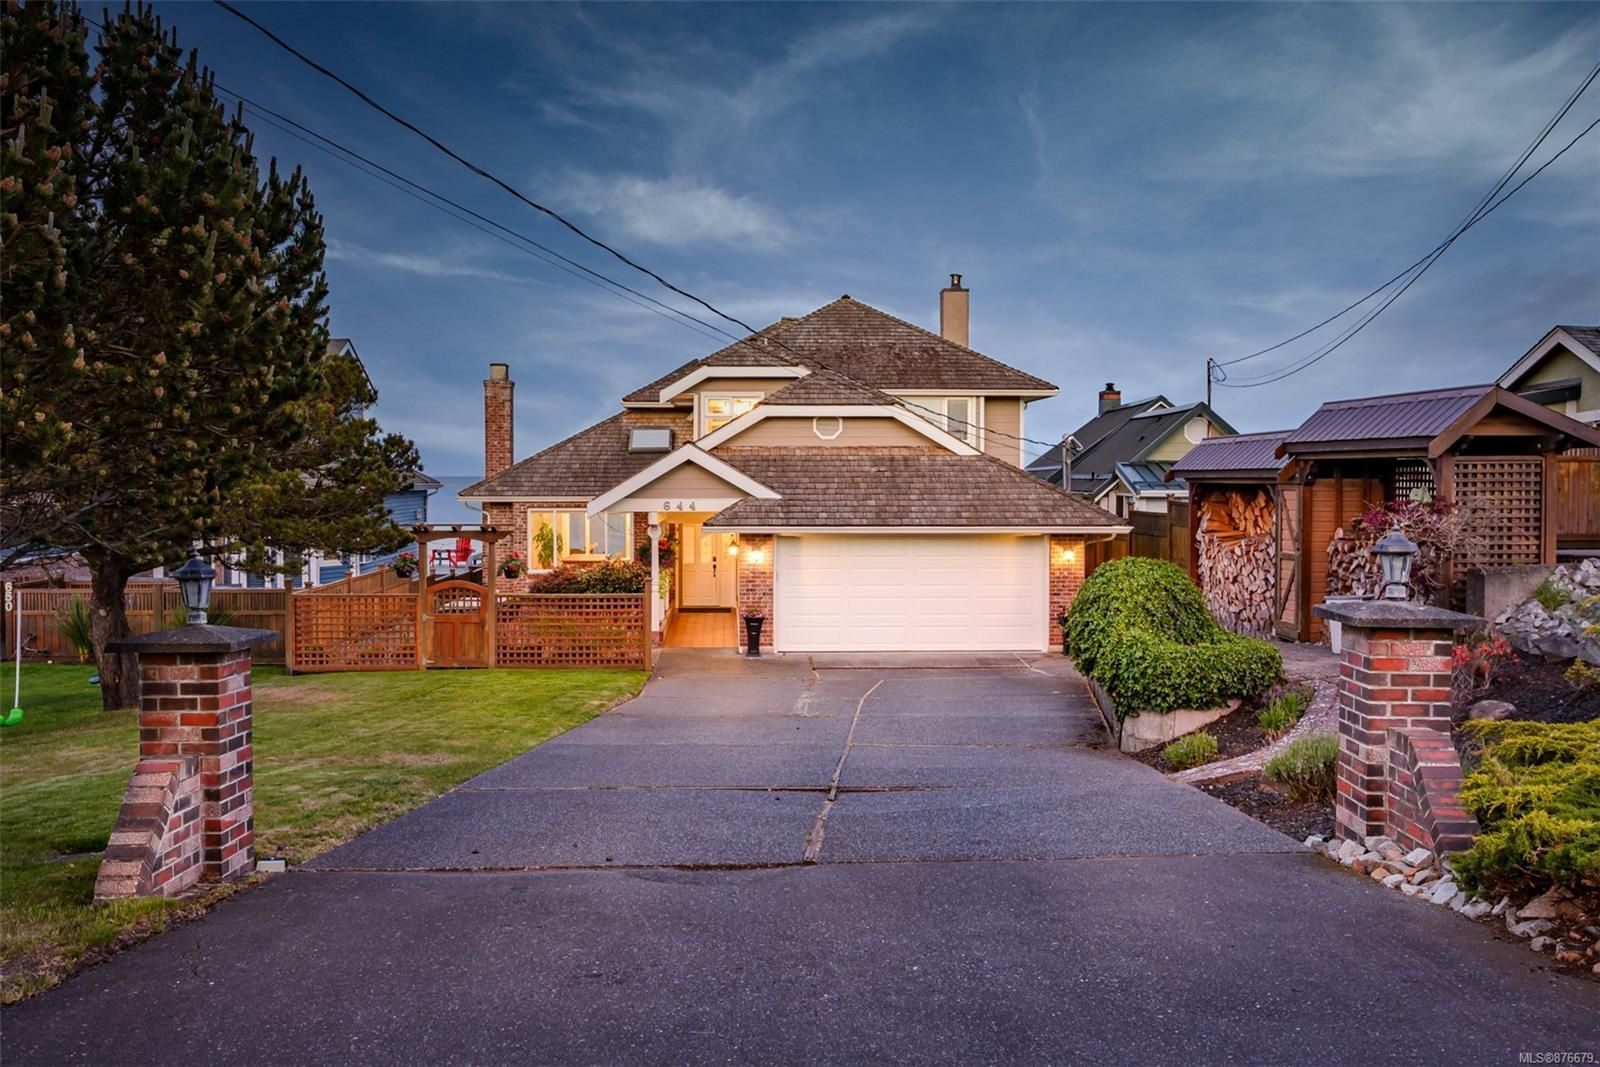 Main Photo: 644 Hutton Rd in : CV Comox (Town of) House for sale (Comox Valley)  : MLS®# 876679